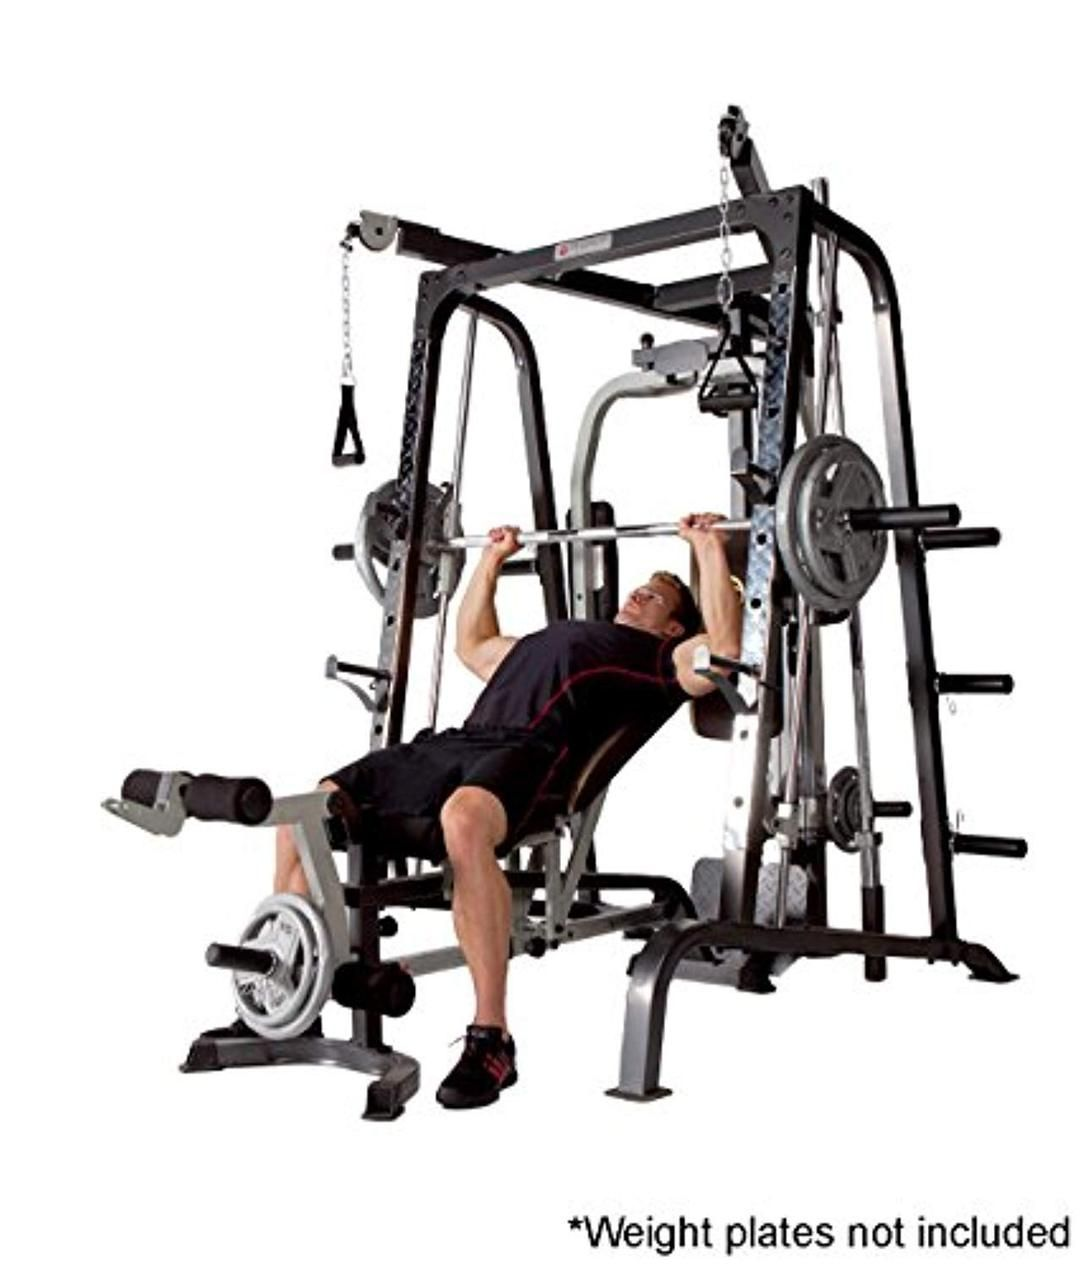 Cage Workout Machine Total Body Training Home Gym System